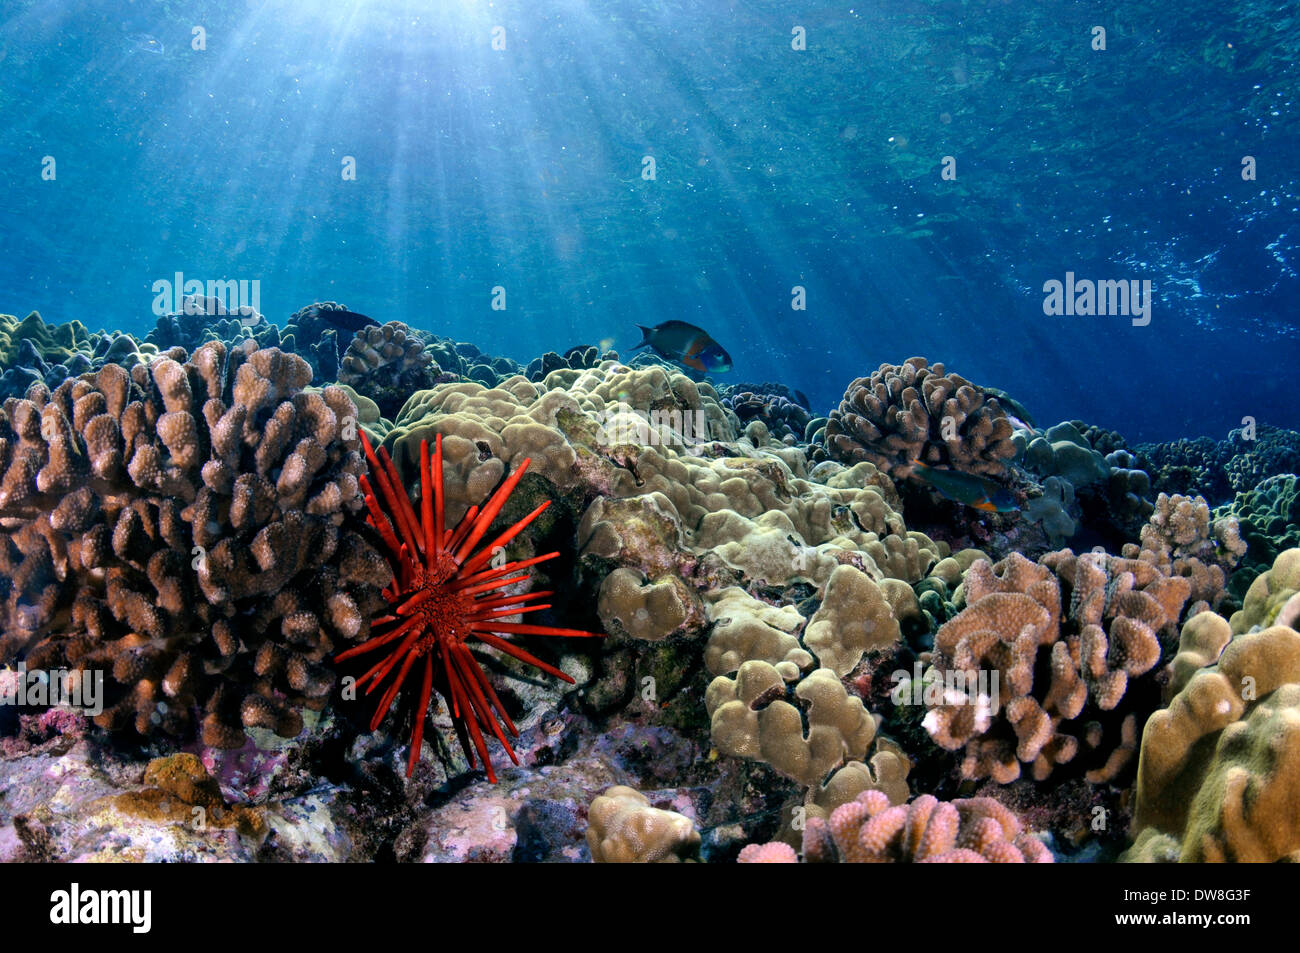 Healthy coral reef with a red slate pencil urchin, Heterocentrotus mamillatus, Molokini, Maui, Hawaii, USA - Stock Image